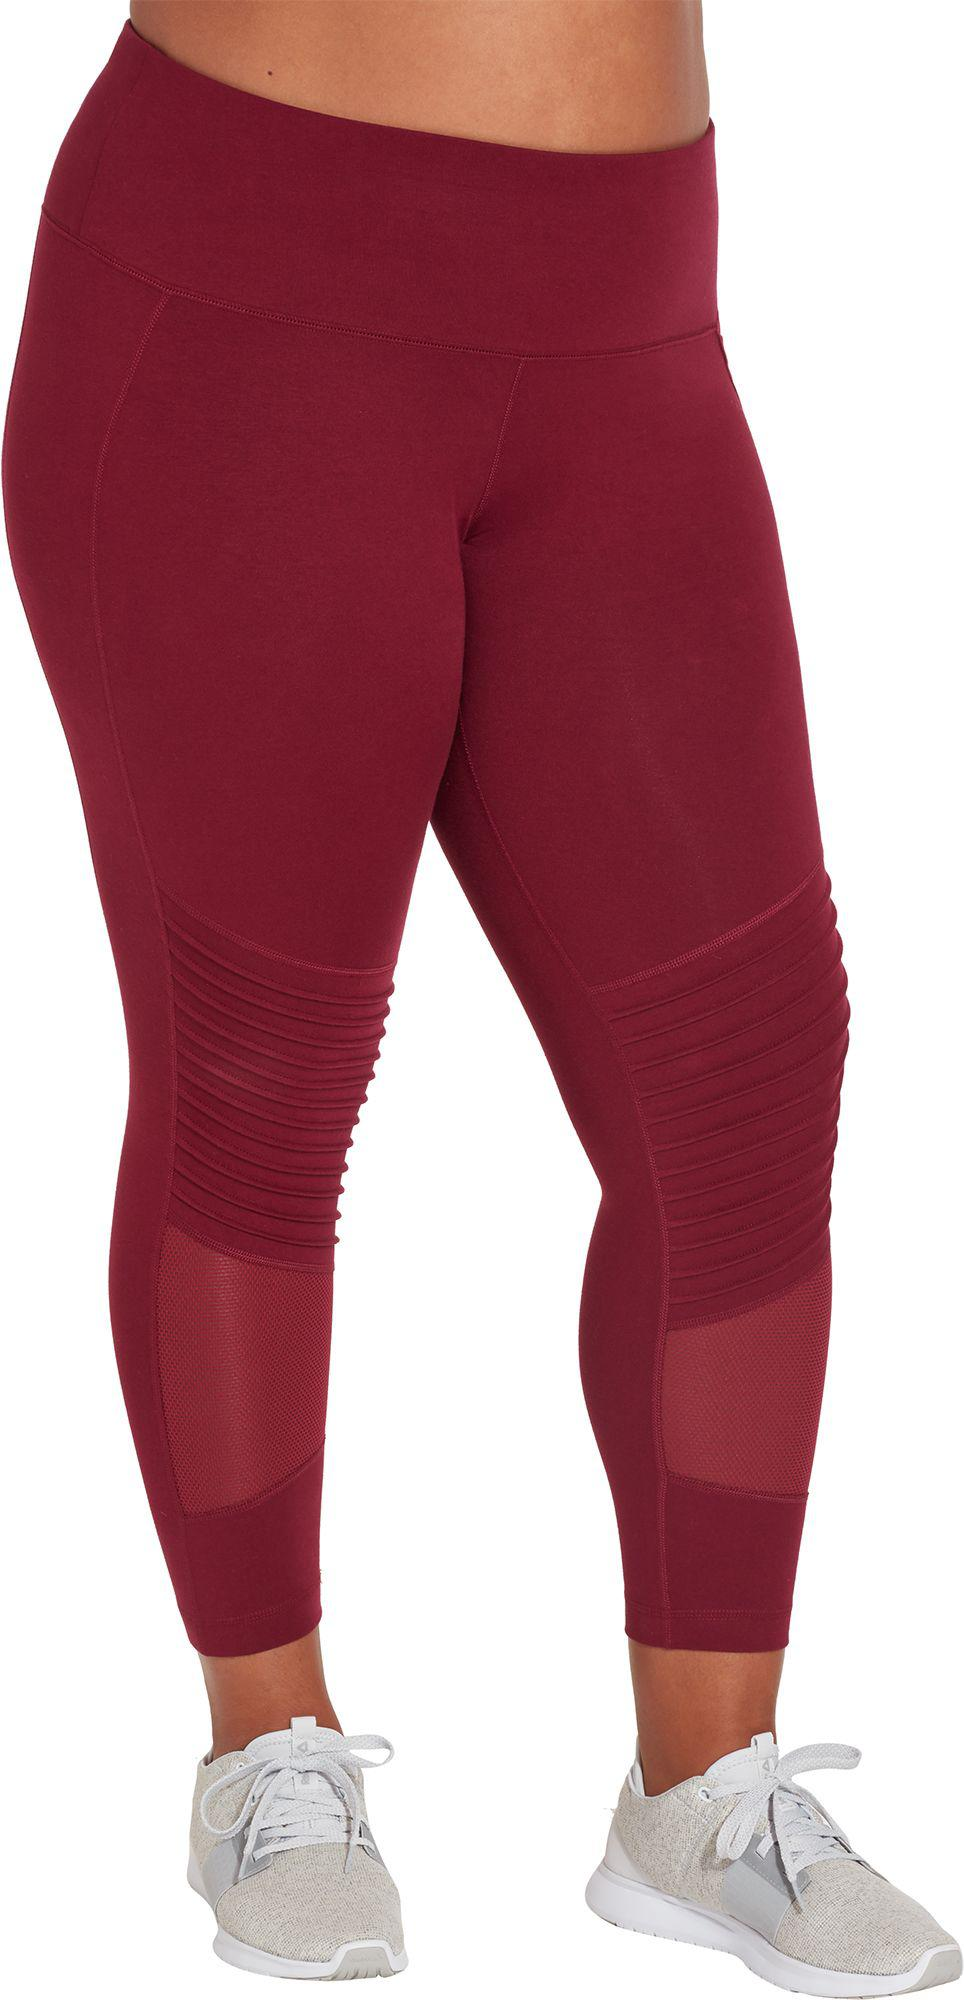 ef69690432870 Reebok Plus Size Stretch Cotton Moto Tights in Red - Lyst